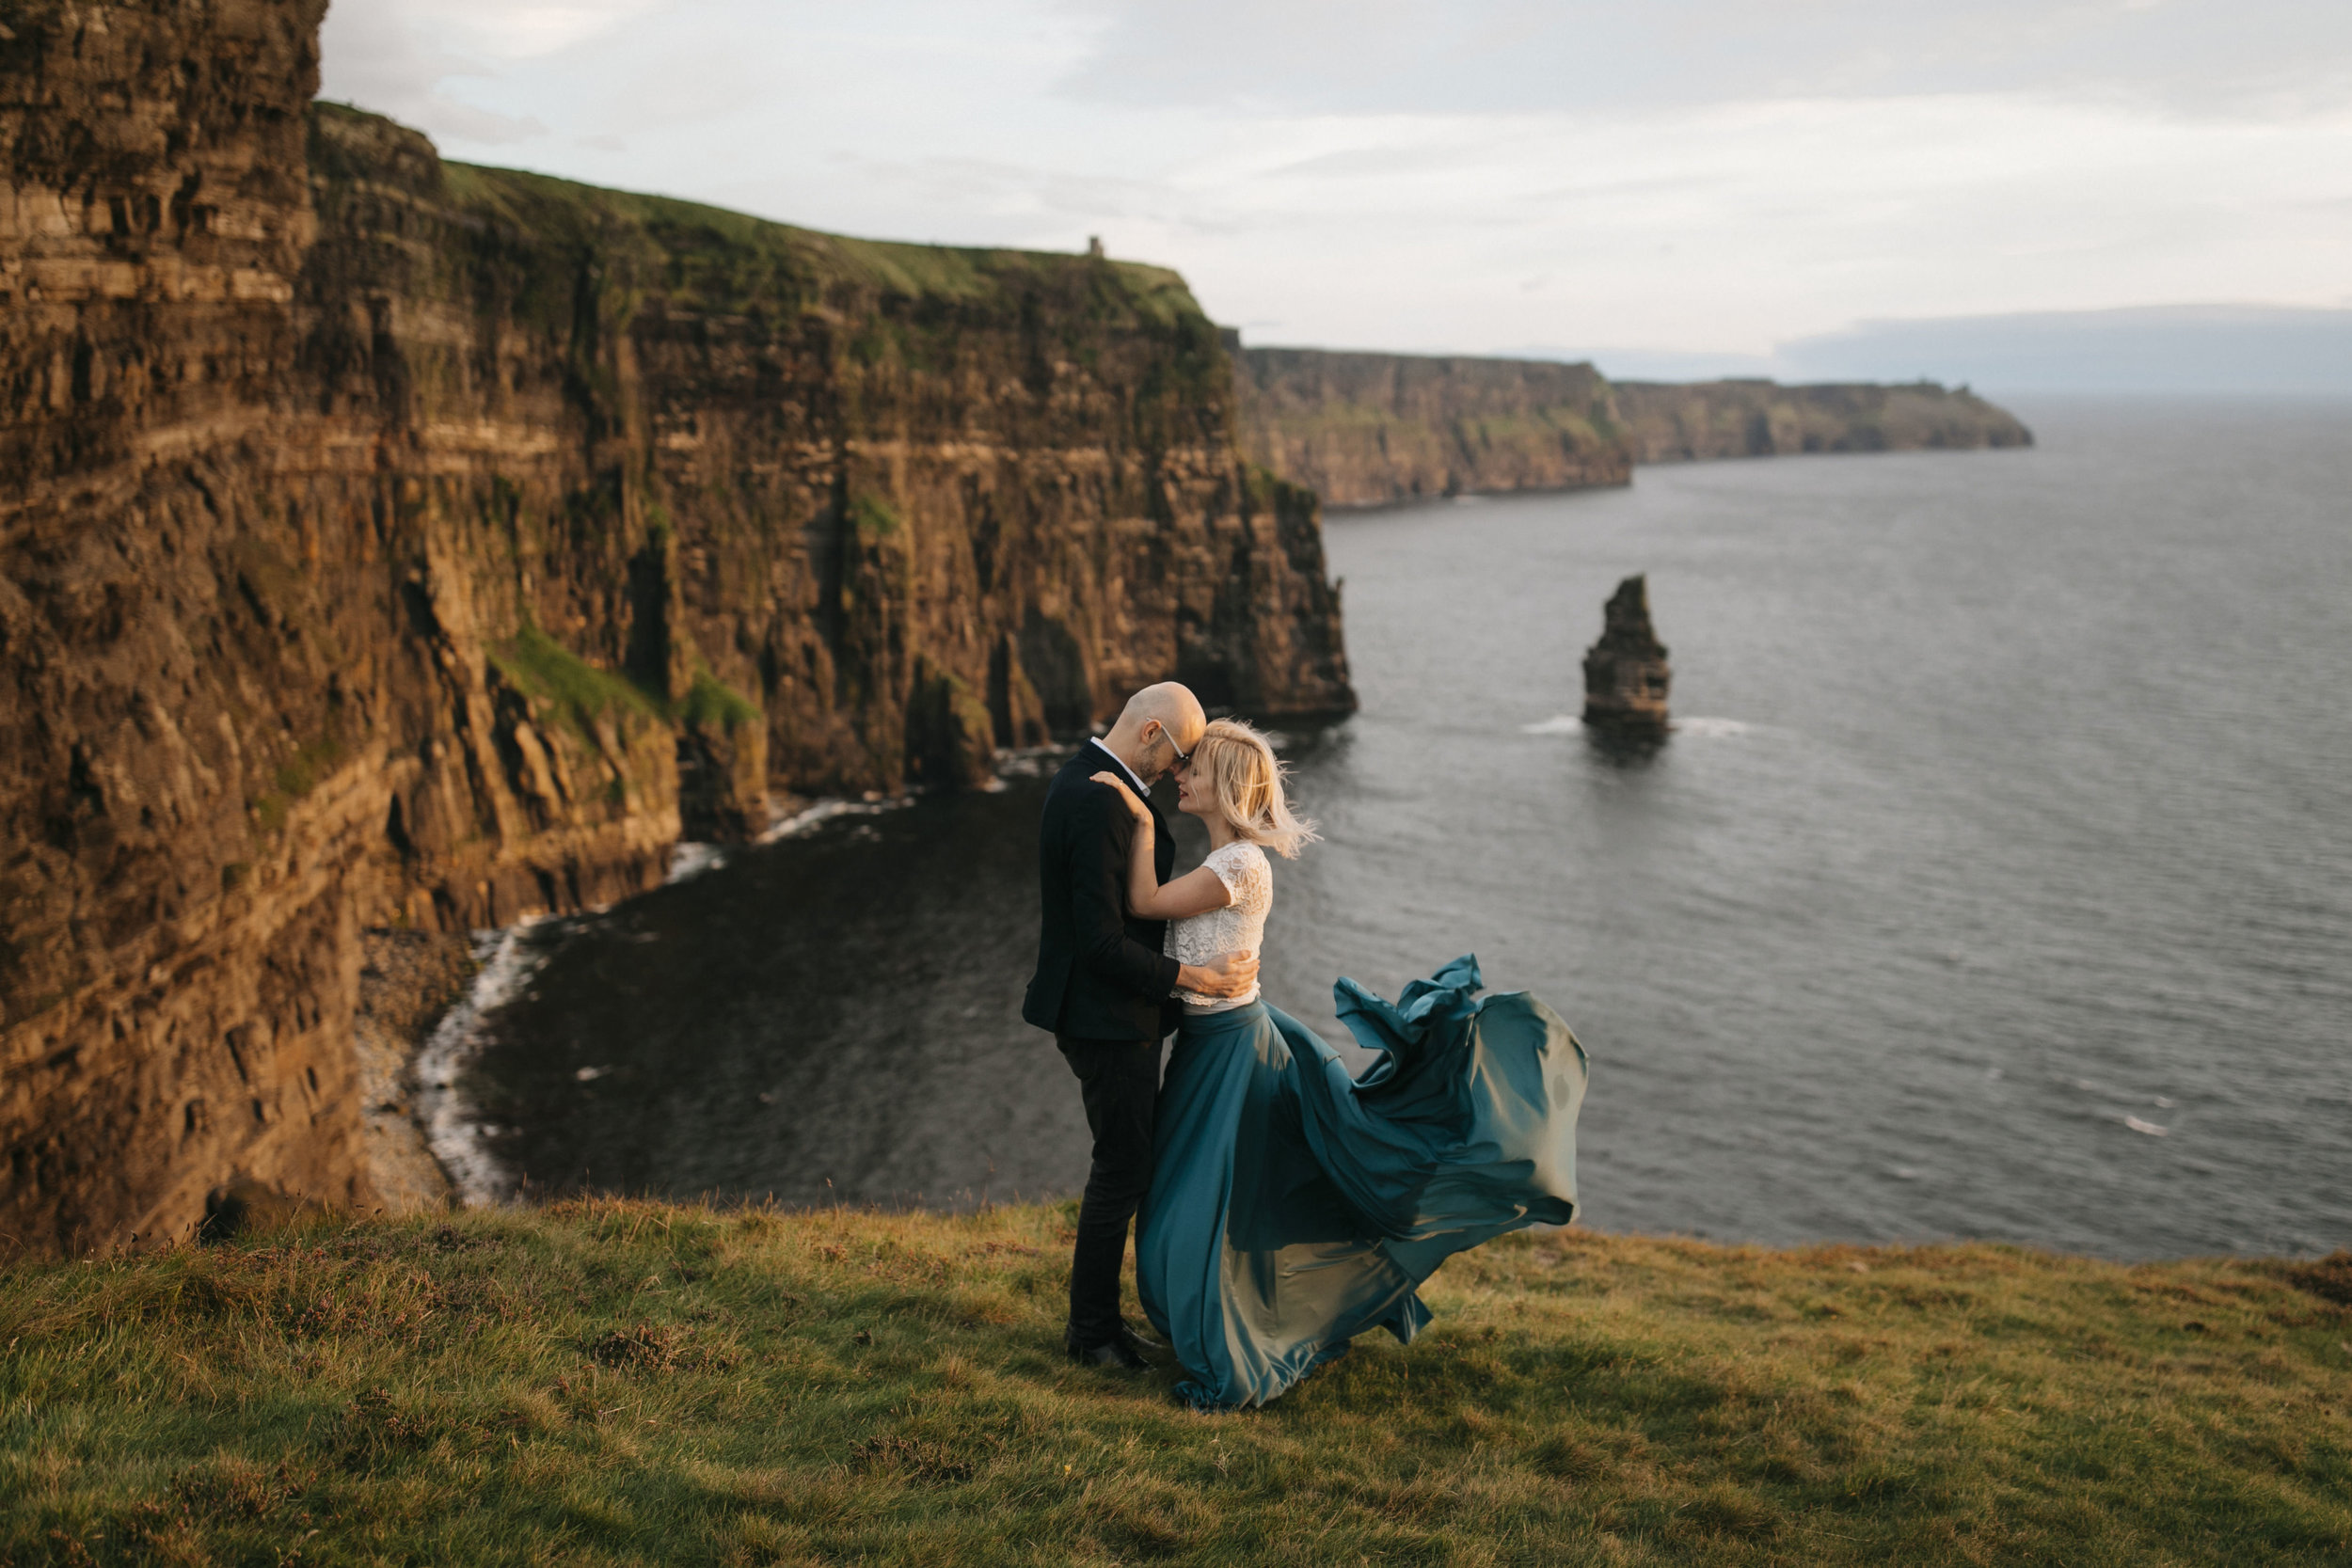 a romantic anniversary session during sunset at the cliffs of moher by adventure photographers colby and jess